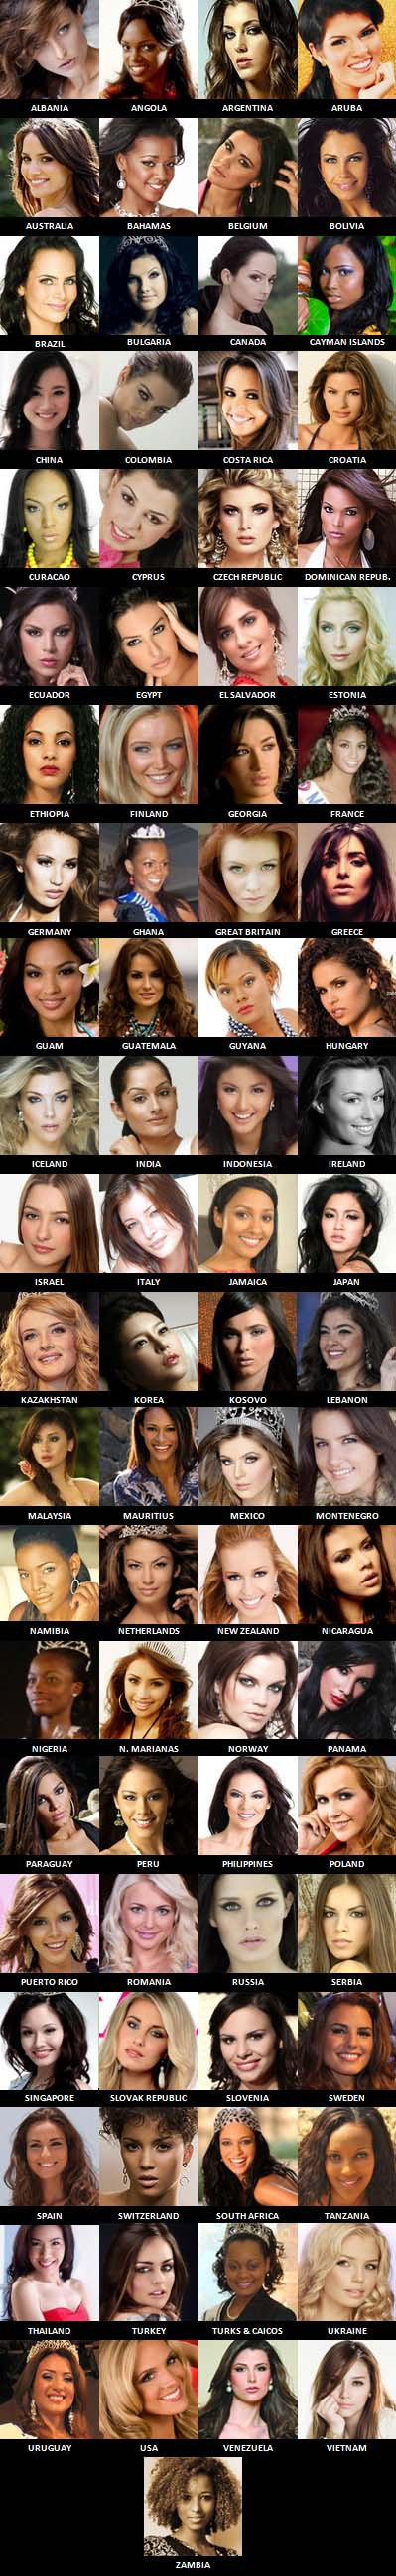 The 2009 Official Miss Universe Candidates